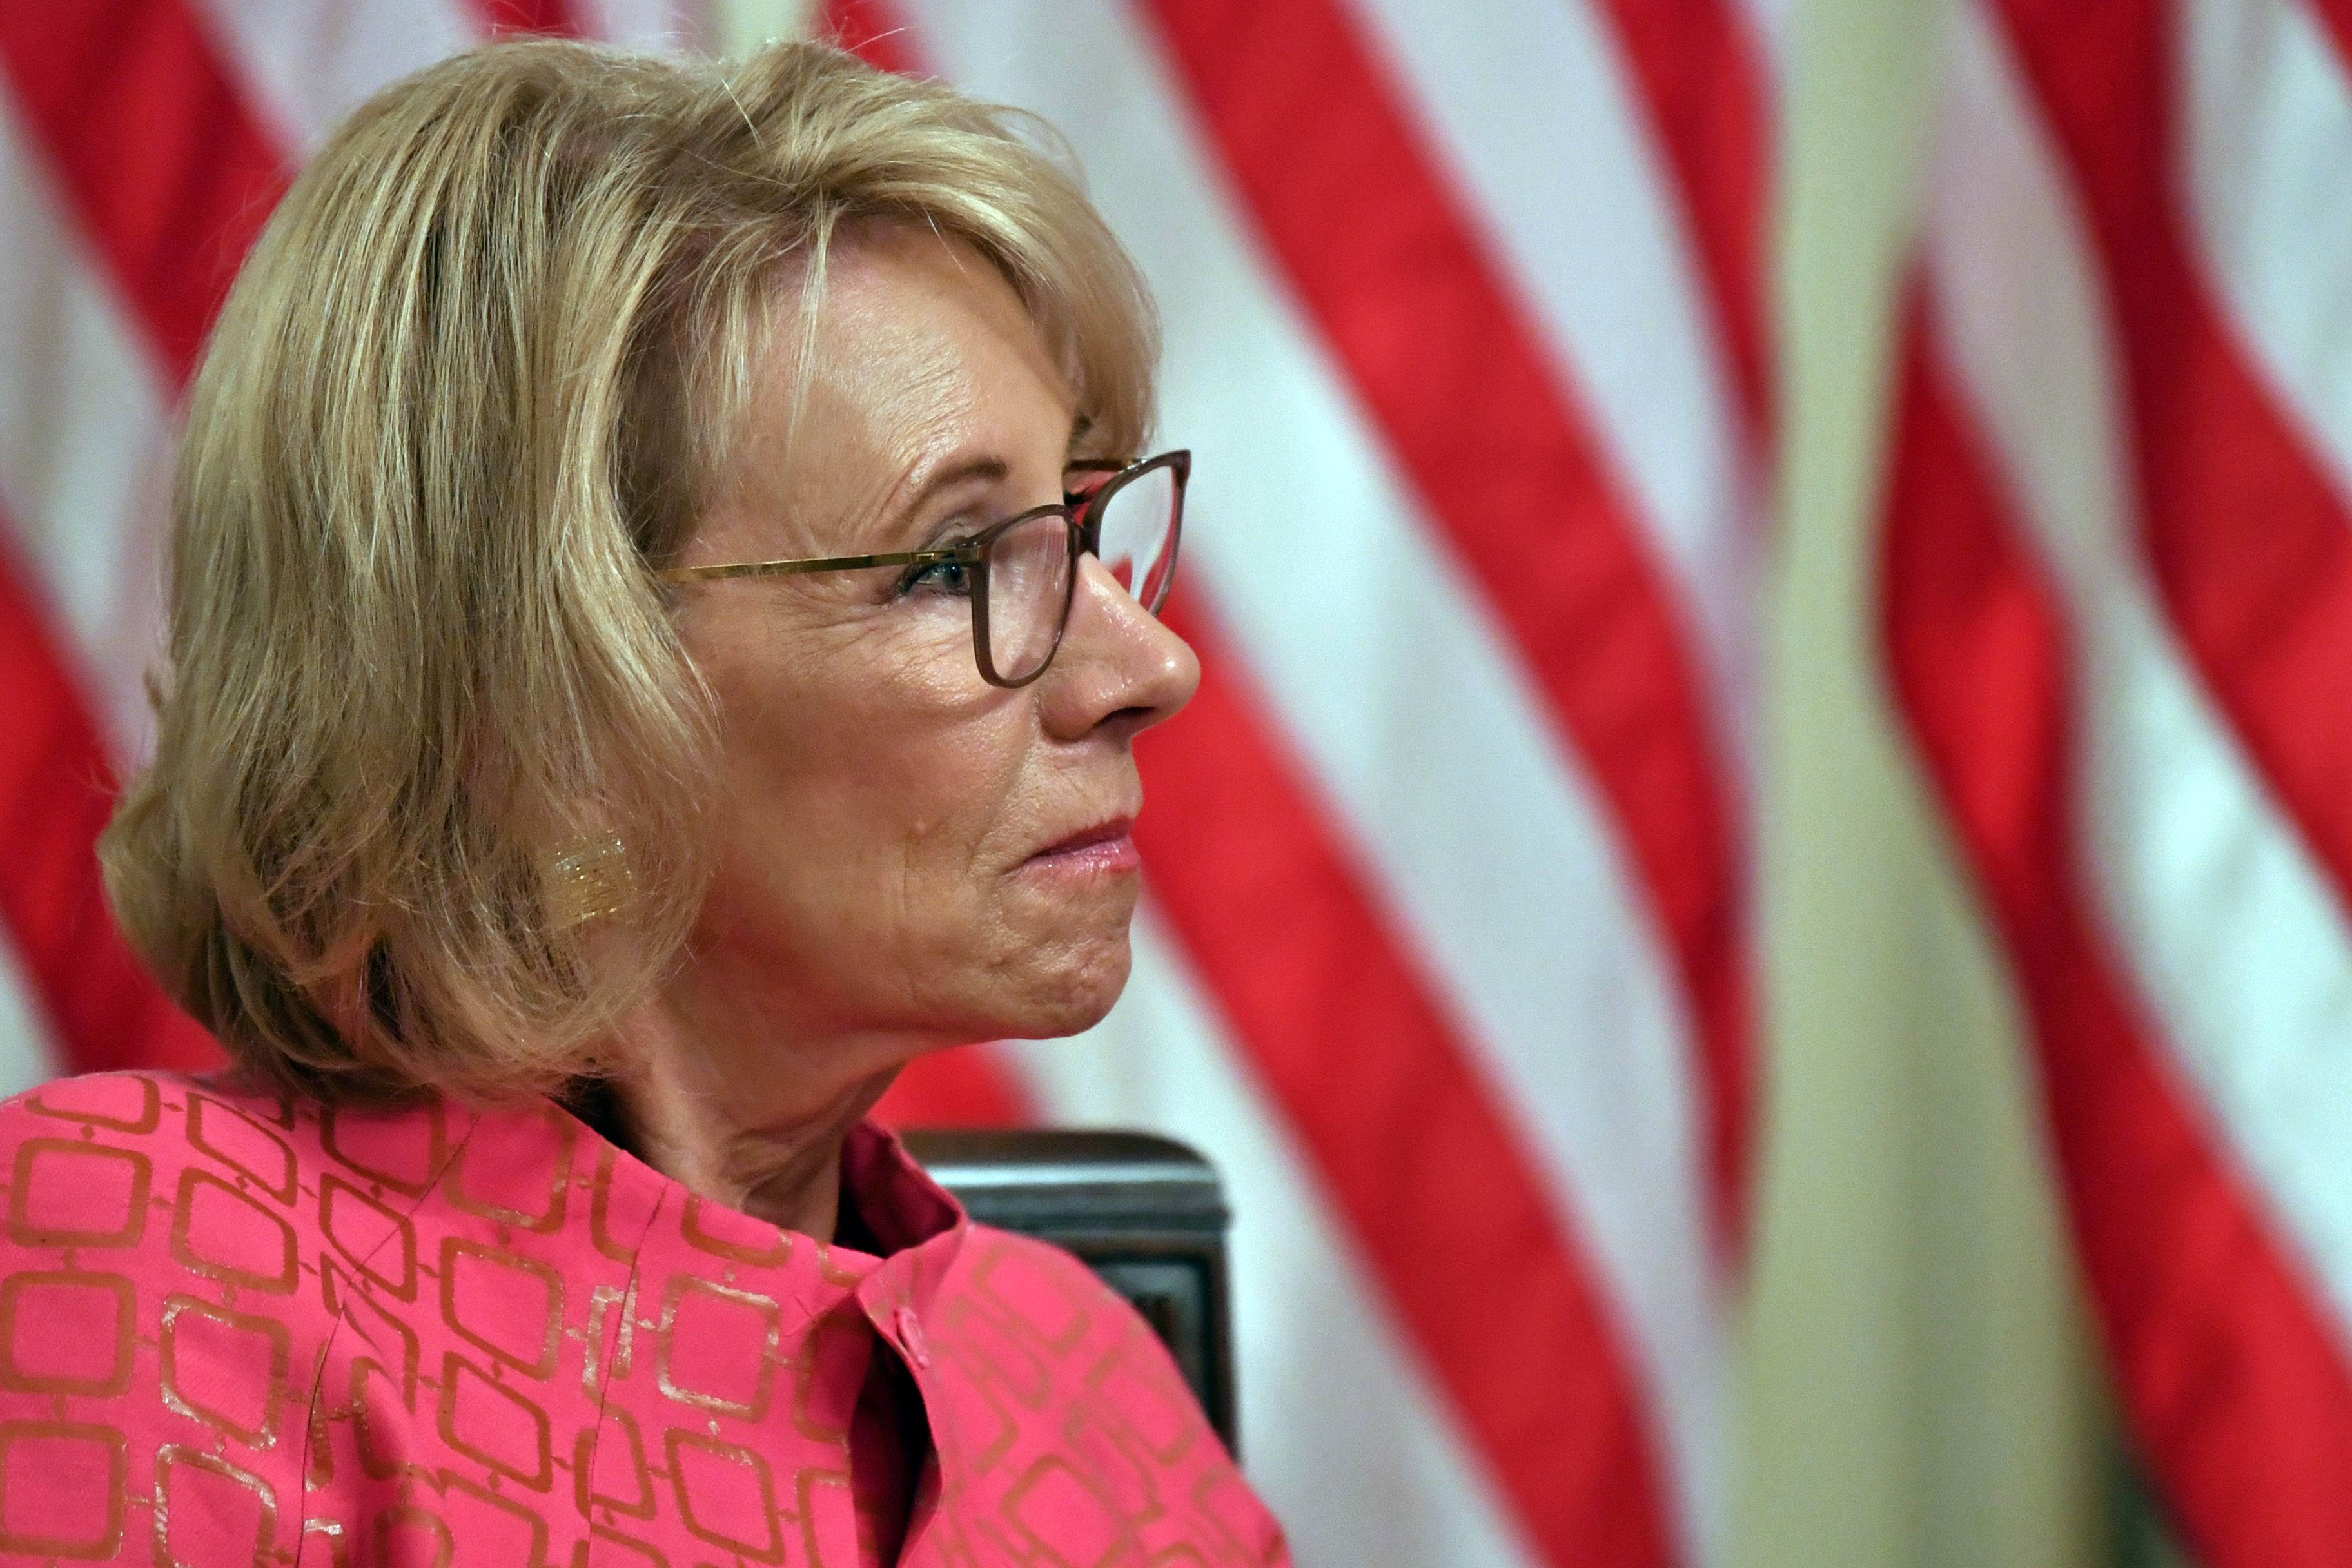 Betsy DeVos, in profile, in front of an American flag.